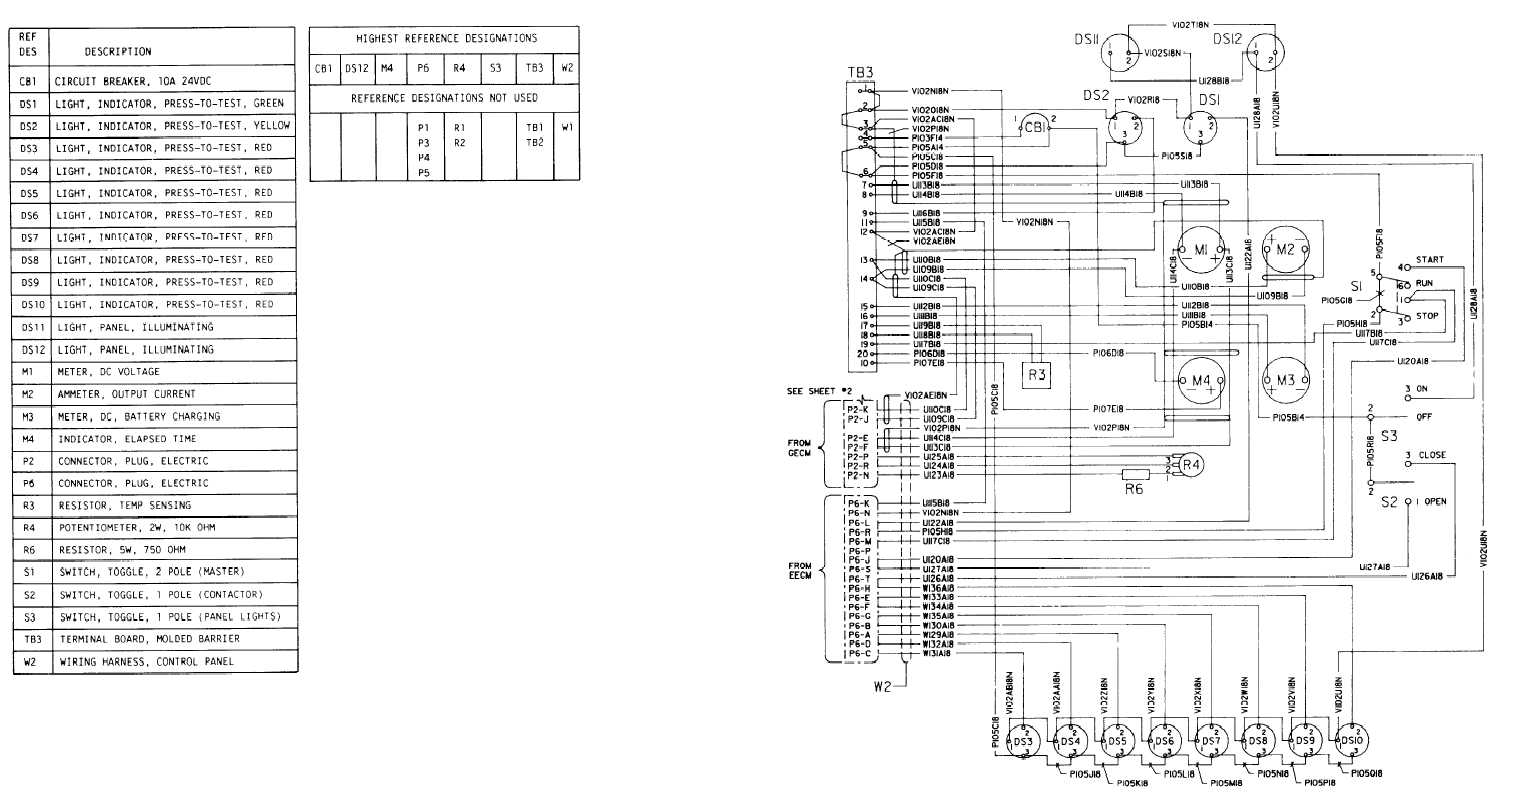 TM 5 6115 612 12_301_1 fo 4 control panel wiring diagram apfc panel wiring diagram pdf at bakdesigns.co